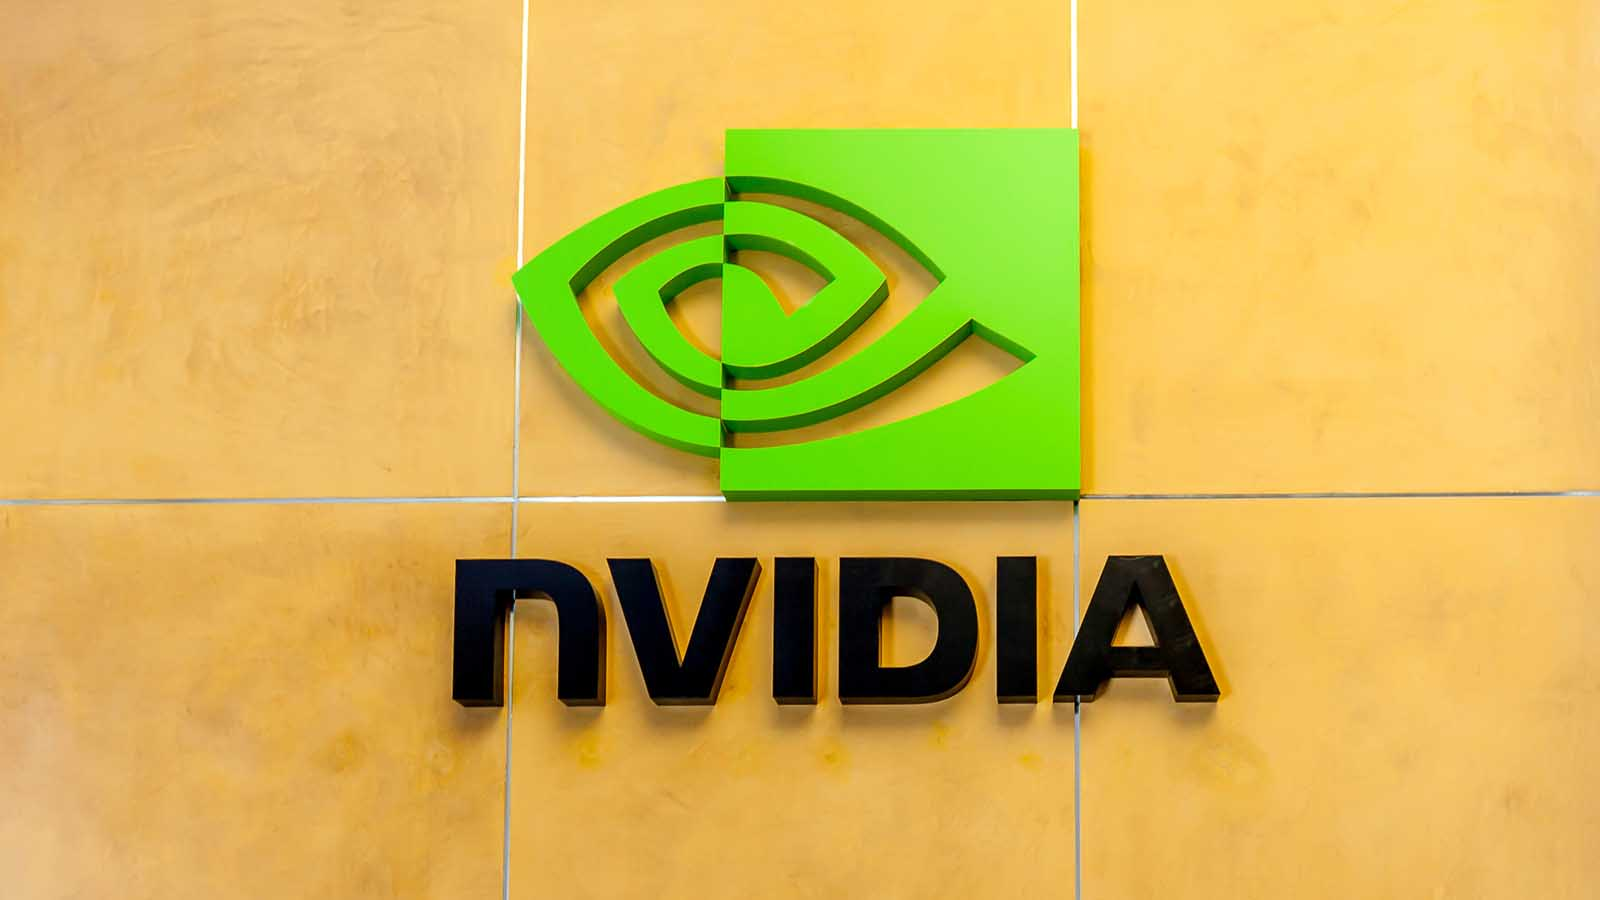 Should Investors Buy Nvidia Stock Before the Company's Q3 Results?